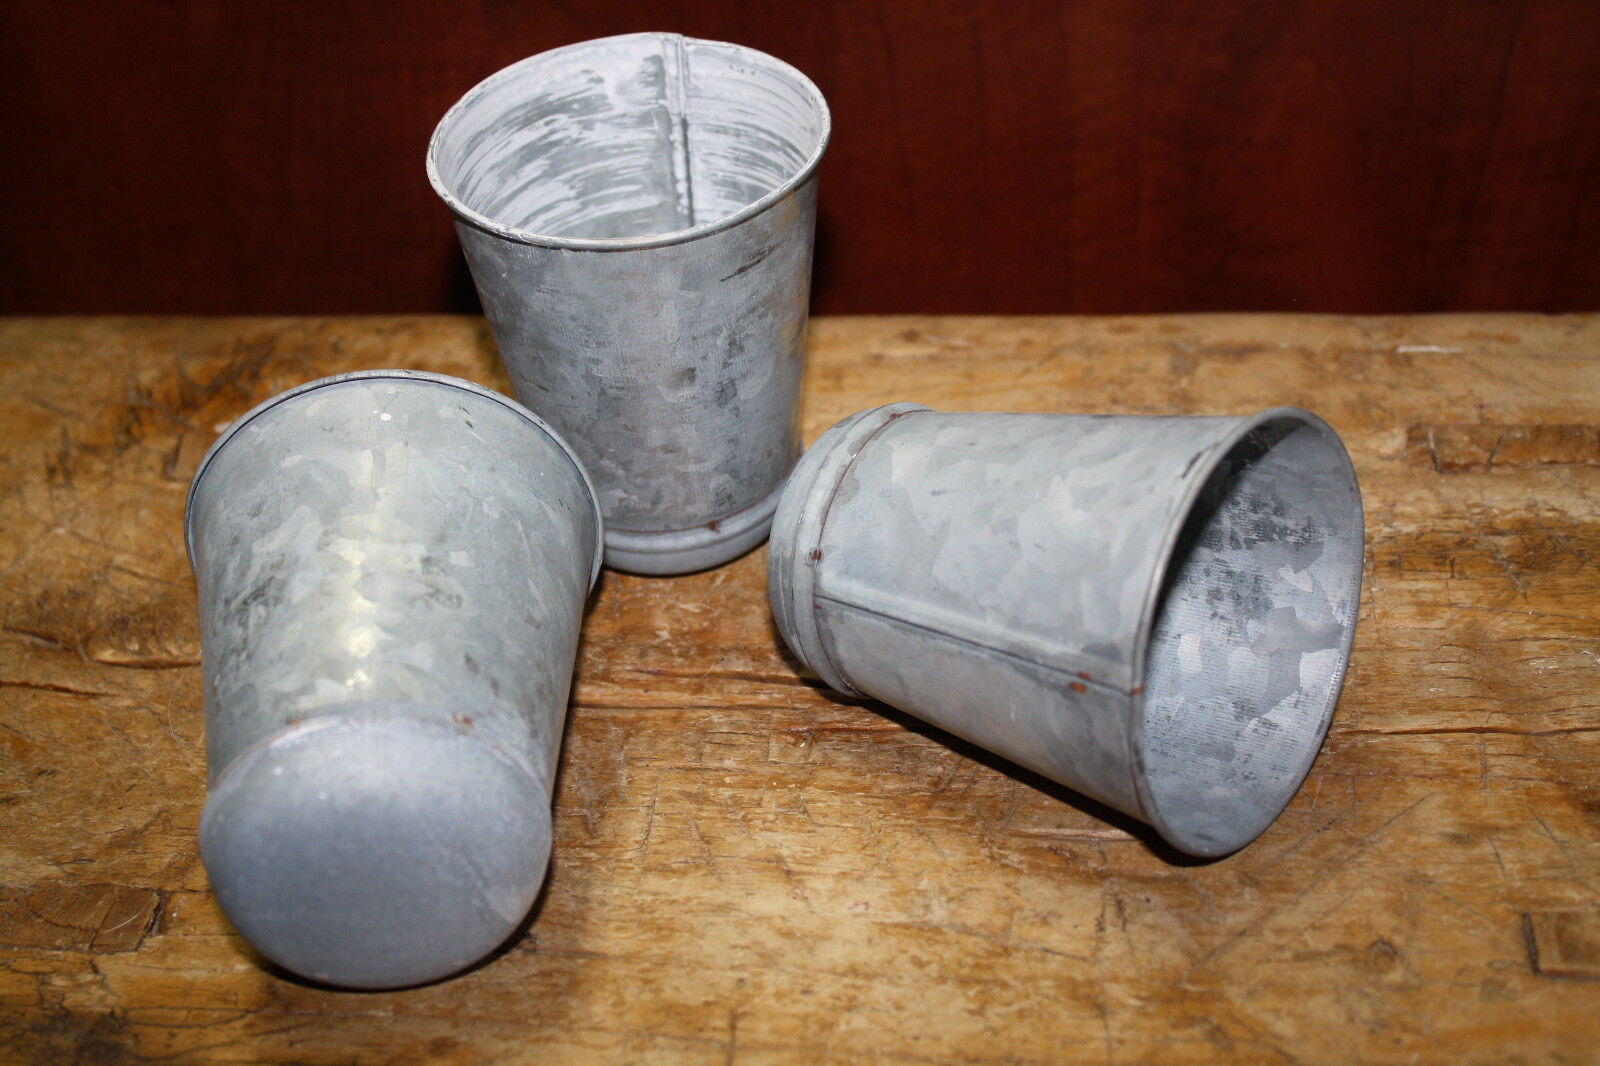 150 GALVANIZED Candle Holder Primitive TIN CUP Votives Candles 4 inch tall